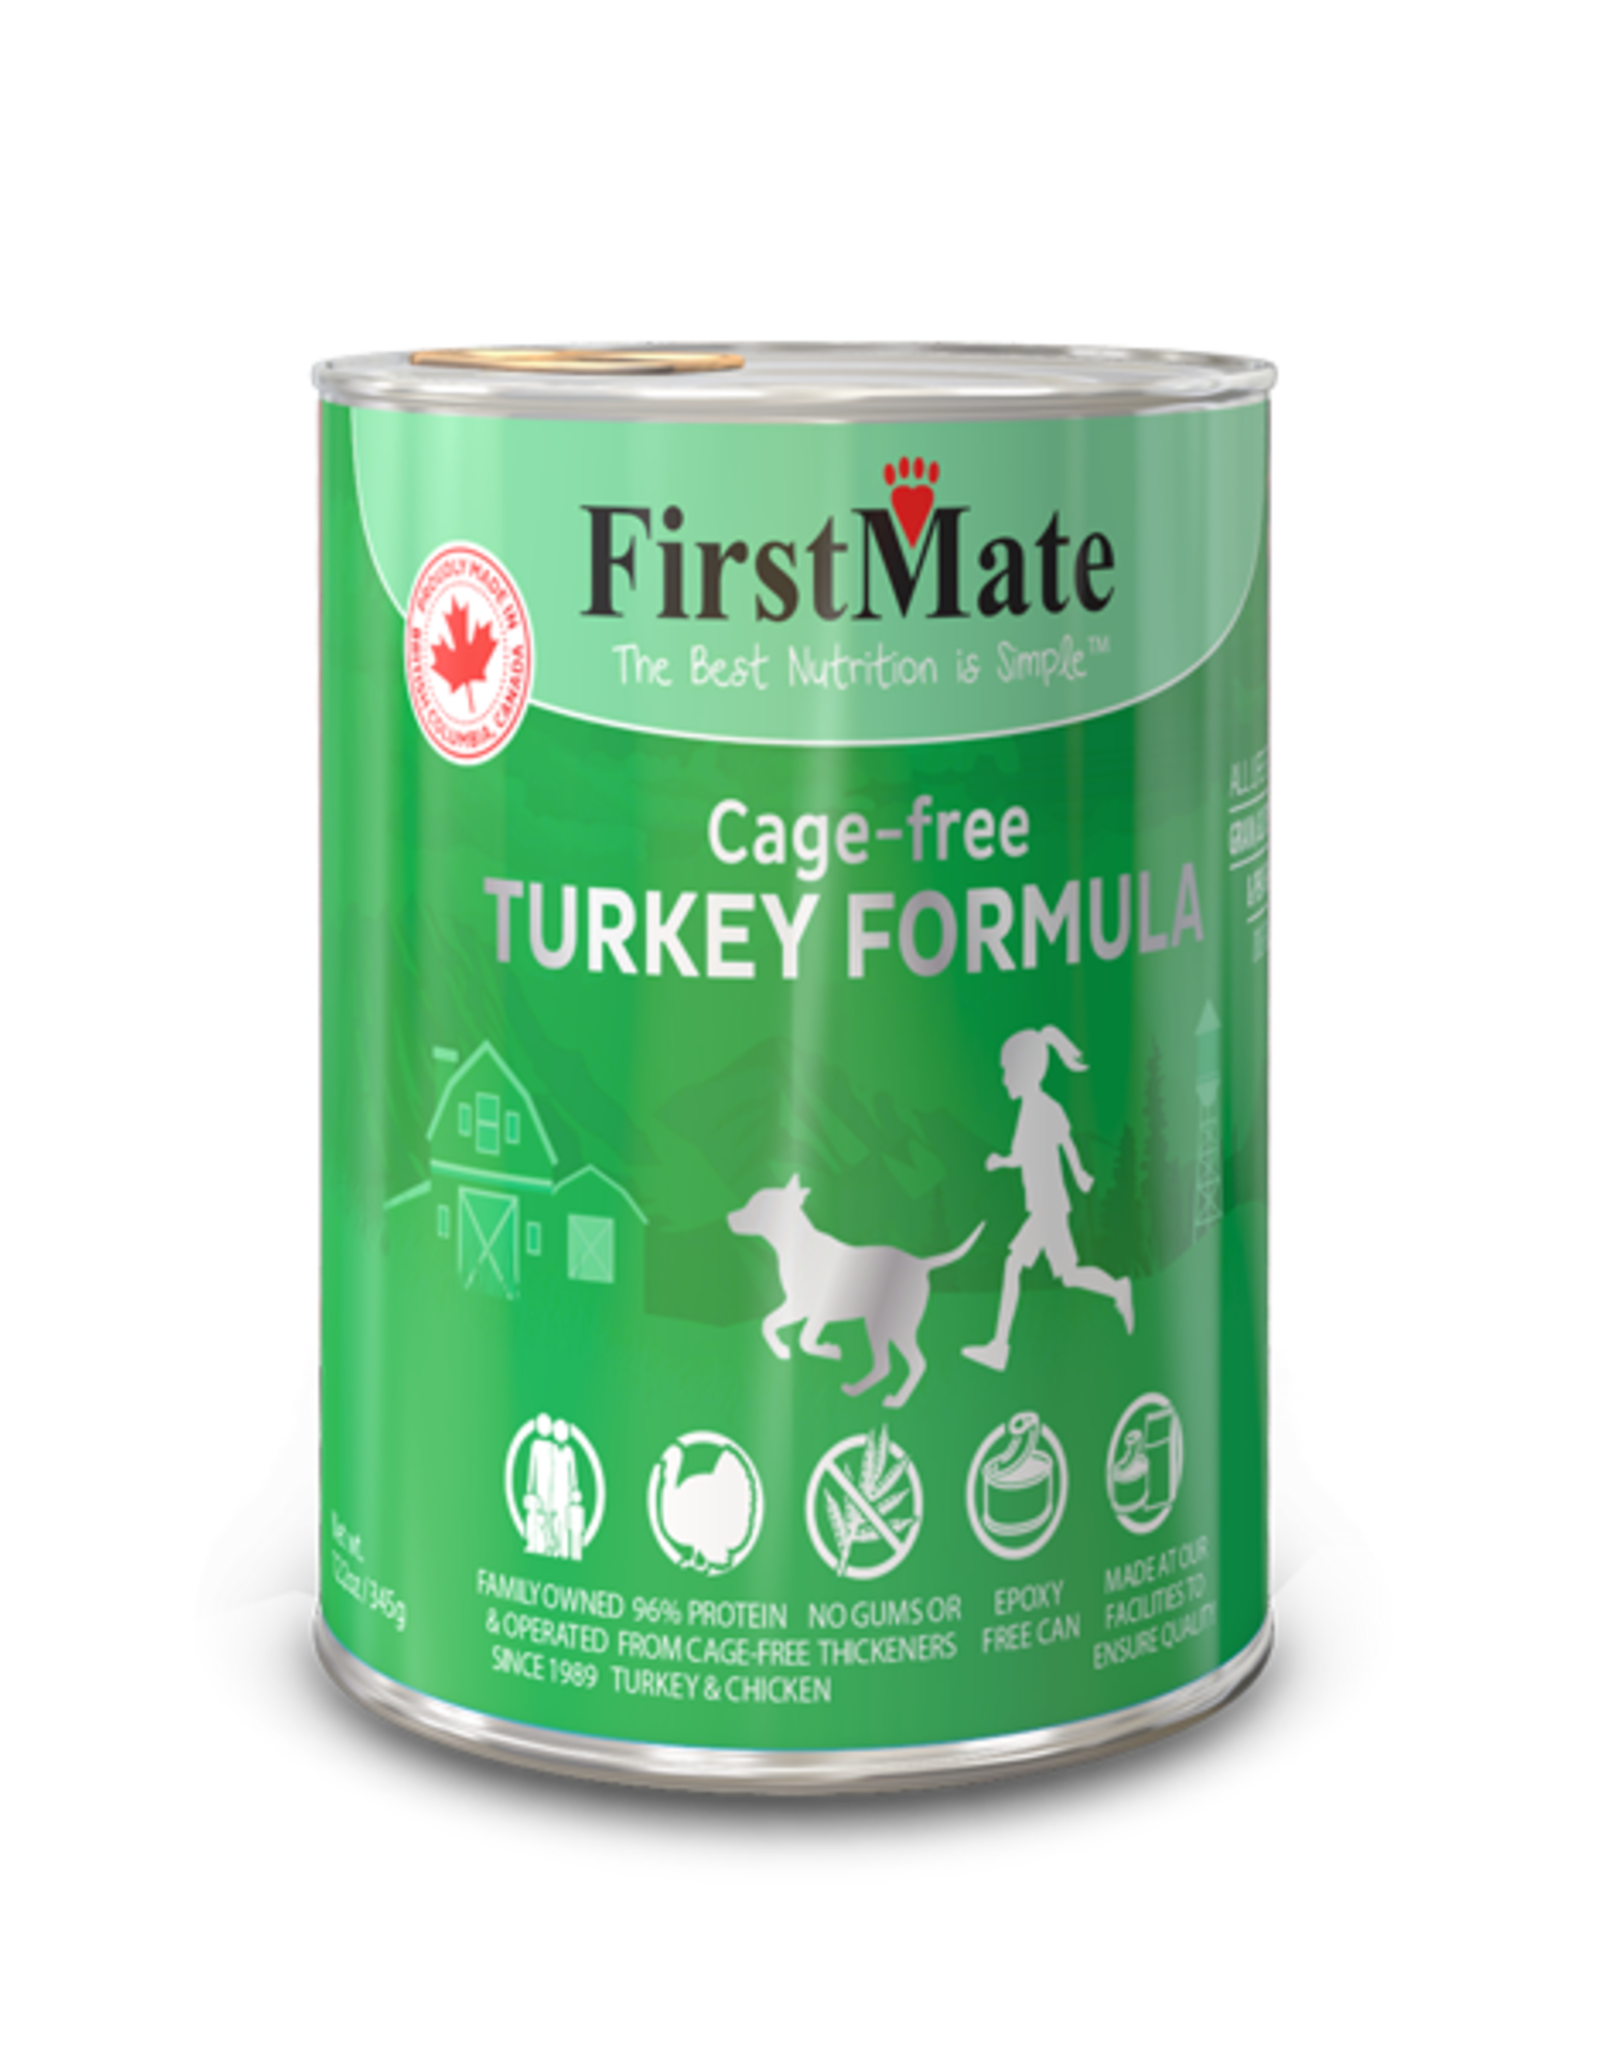 FirstMate FirstMate Cage Free Turkey Formula for Dogs – 12 Cans